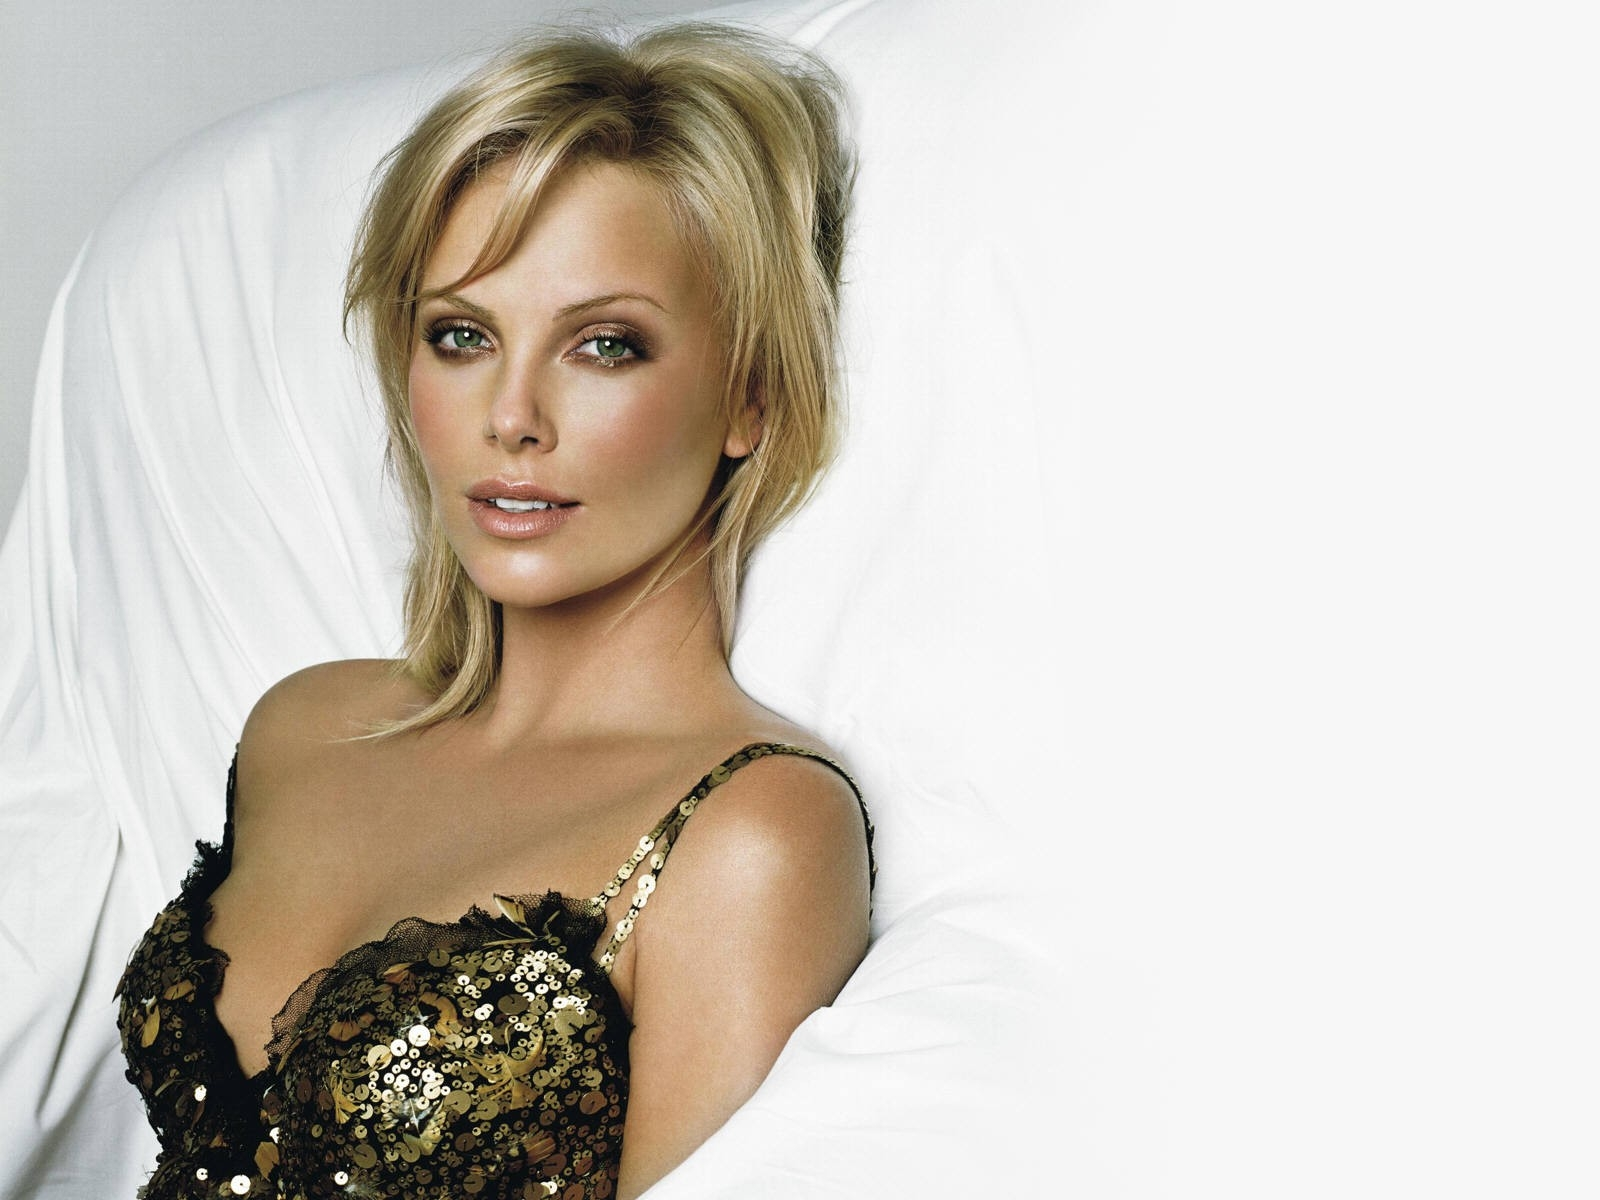 Wallpaper di Charlize Theron in lingerie